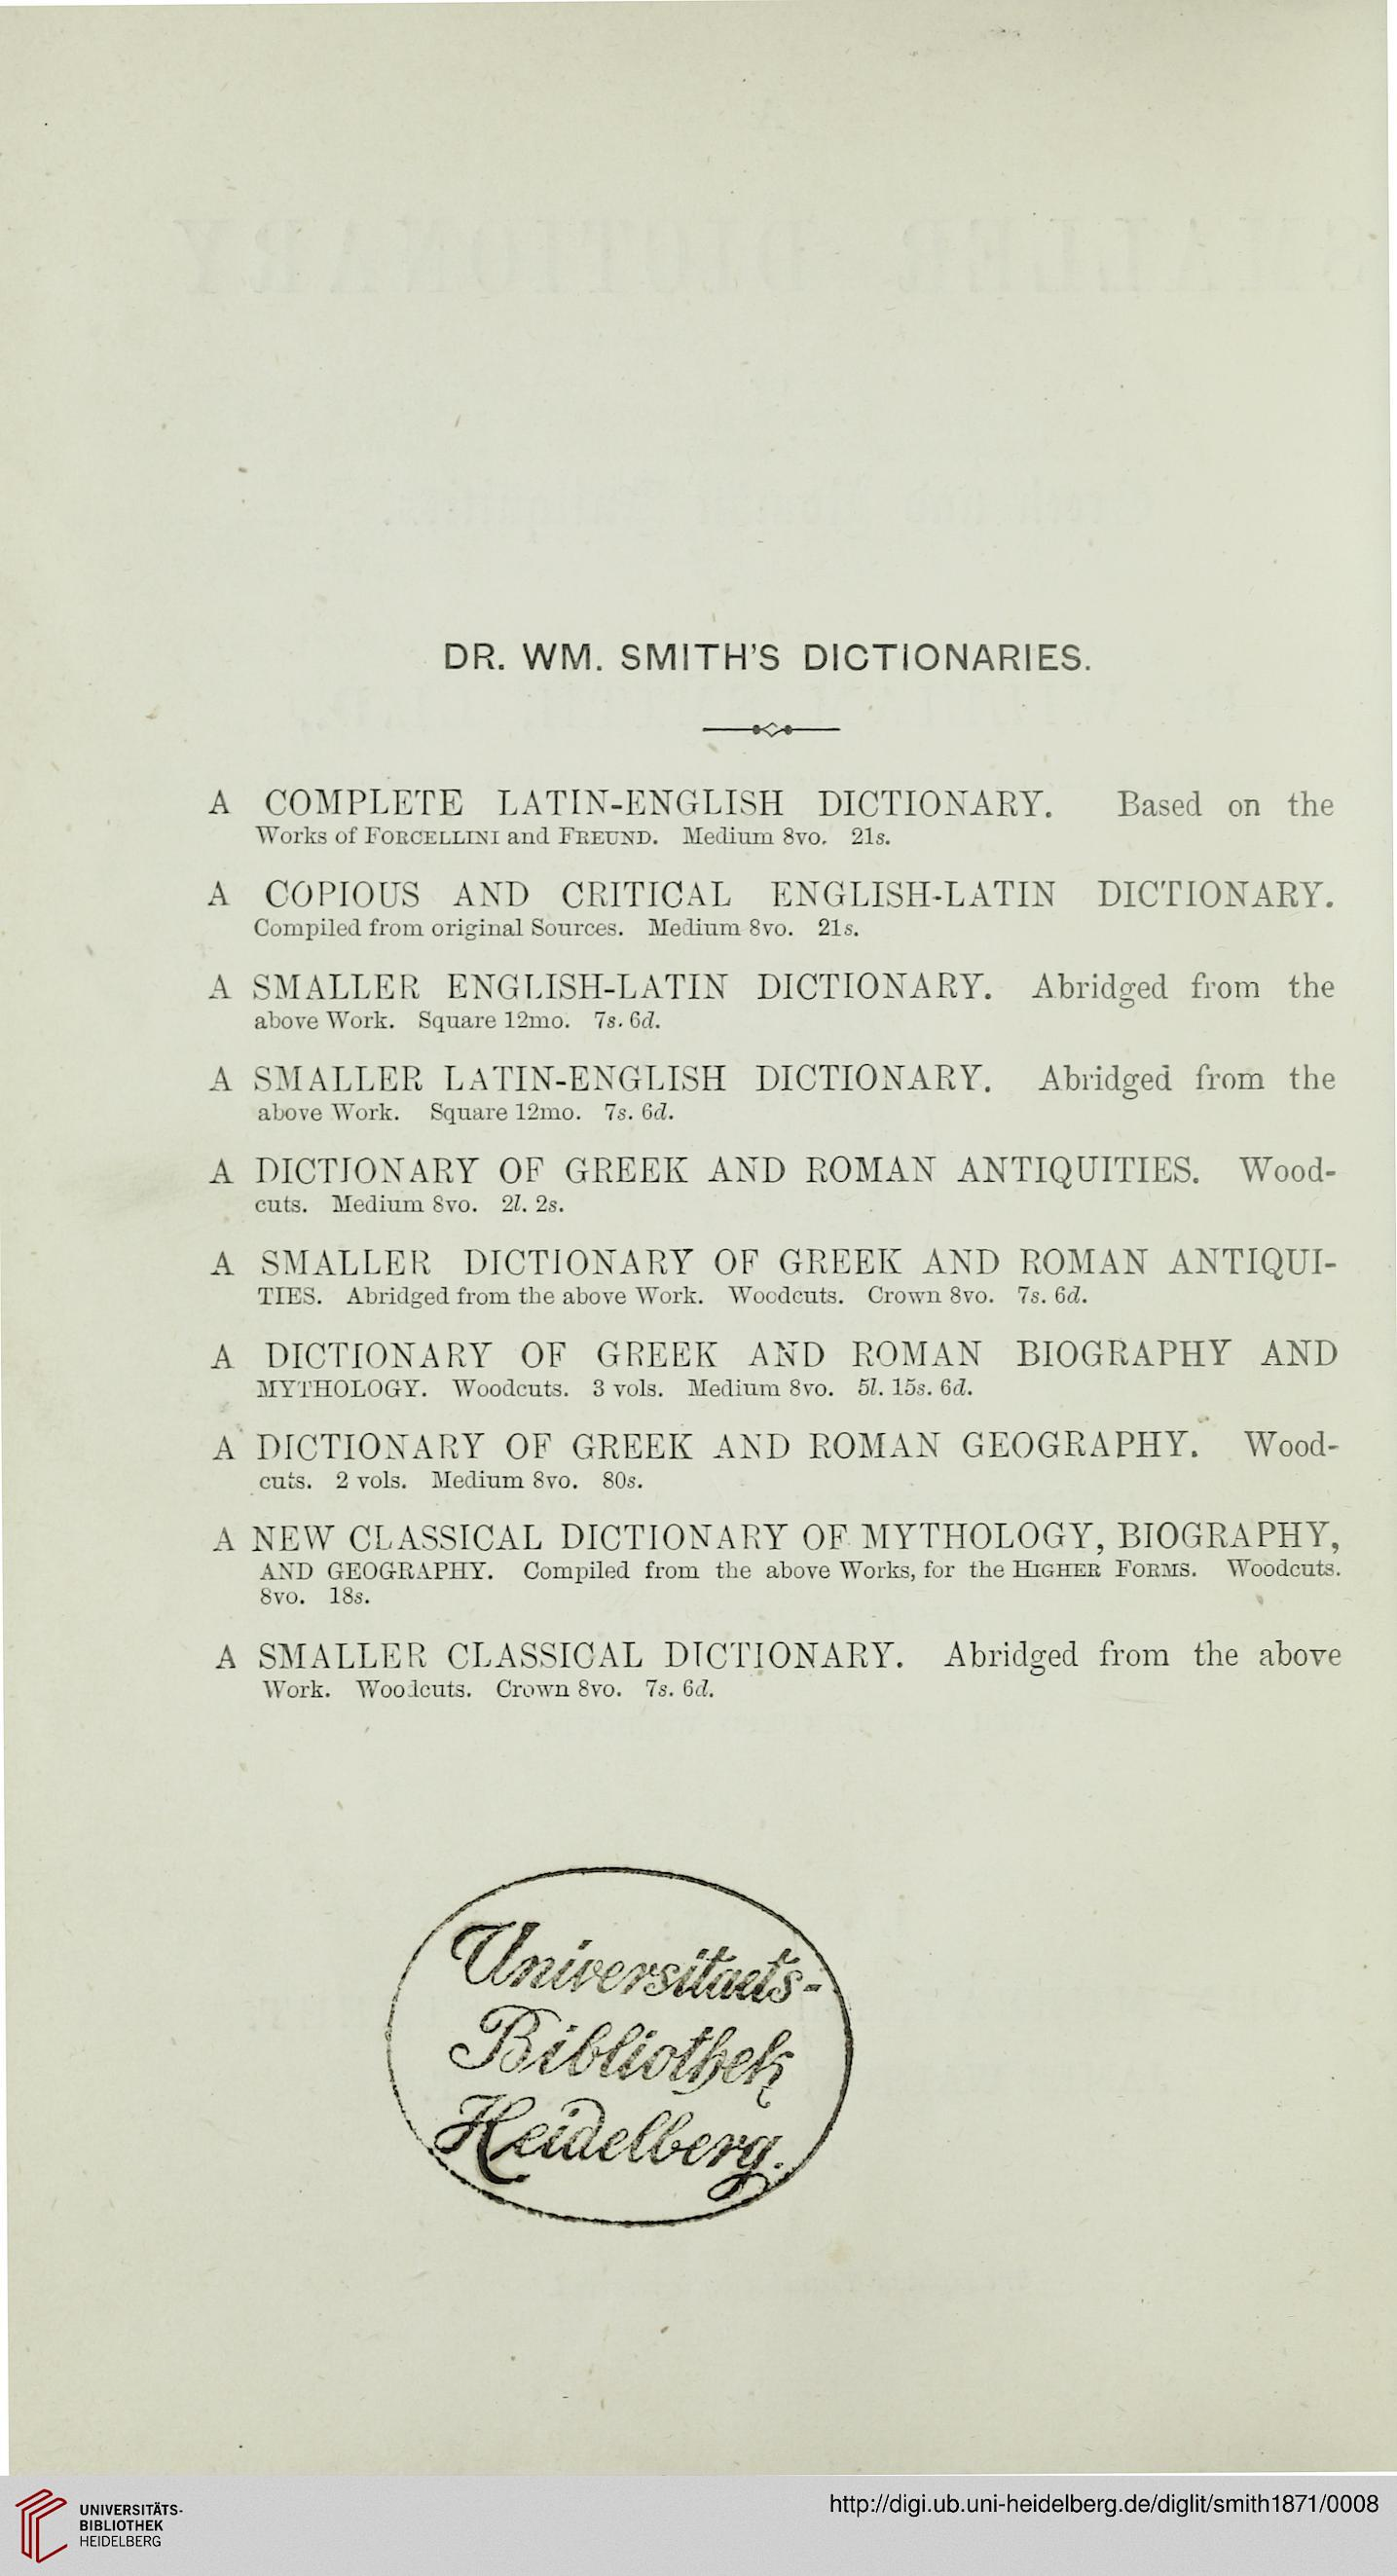 Smith, William: A smaller dictionary of Greek and Roman